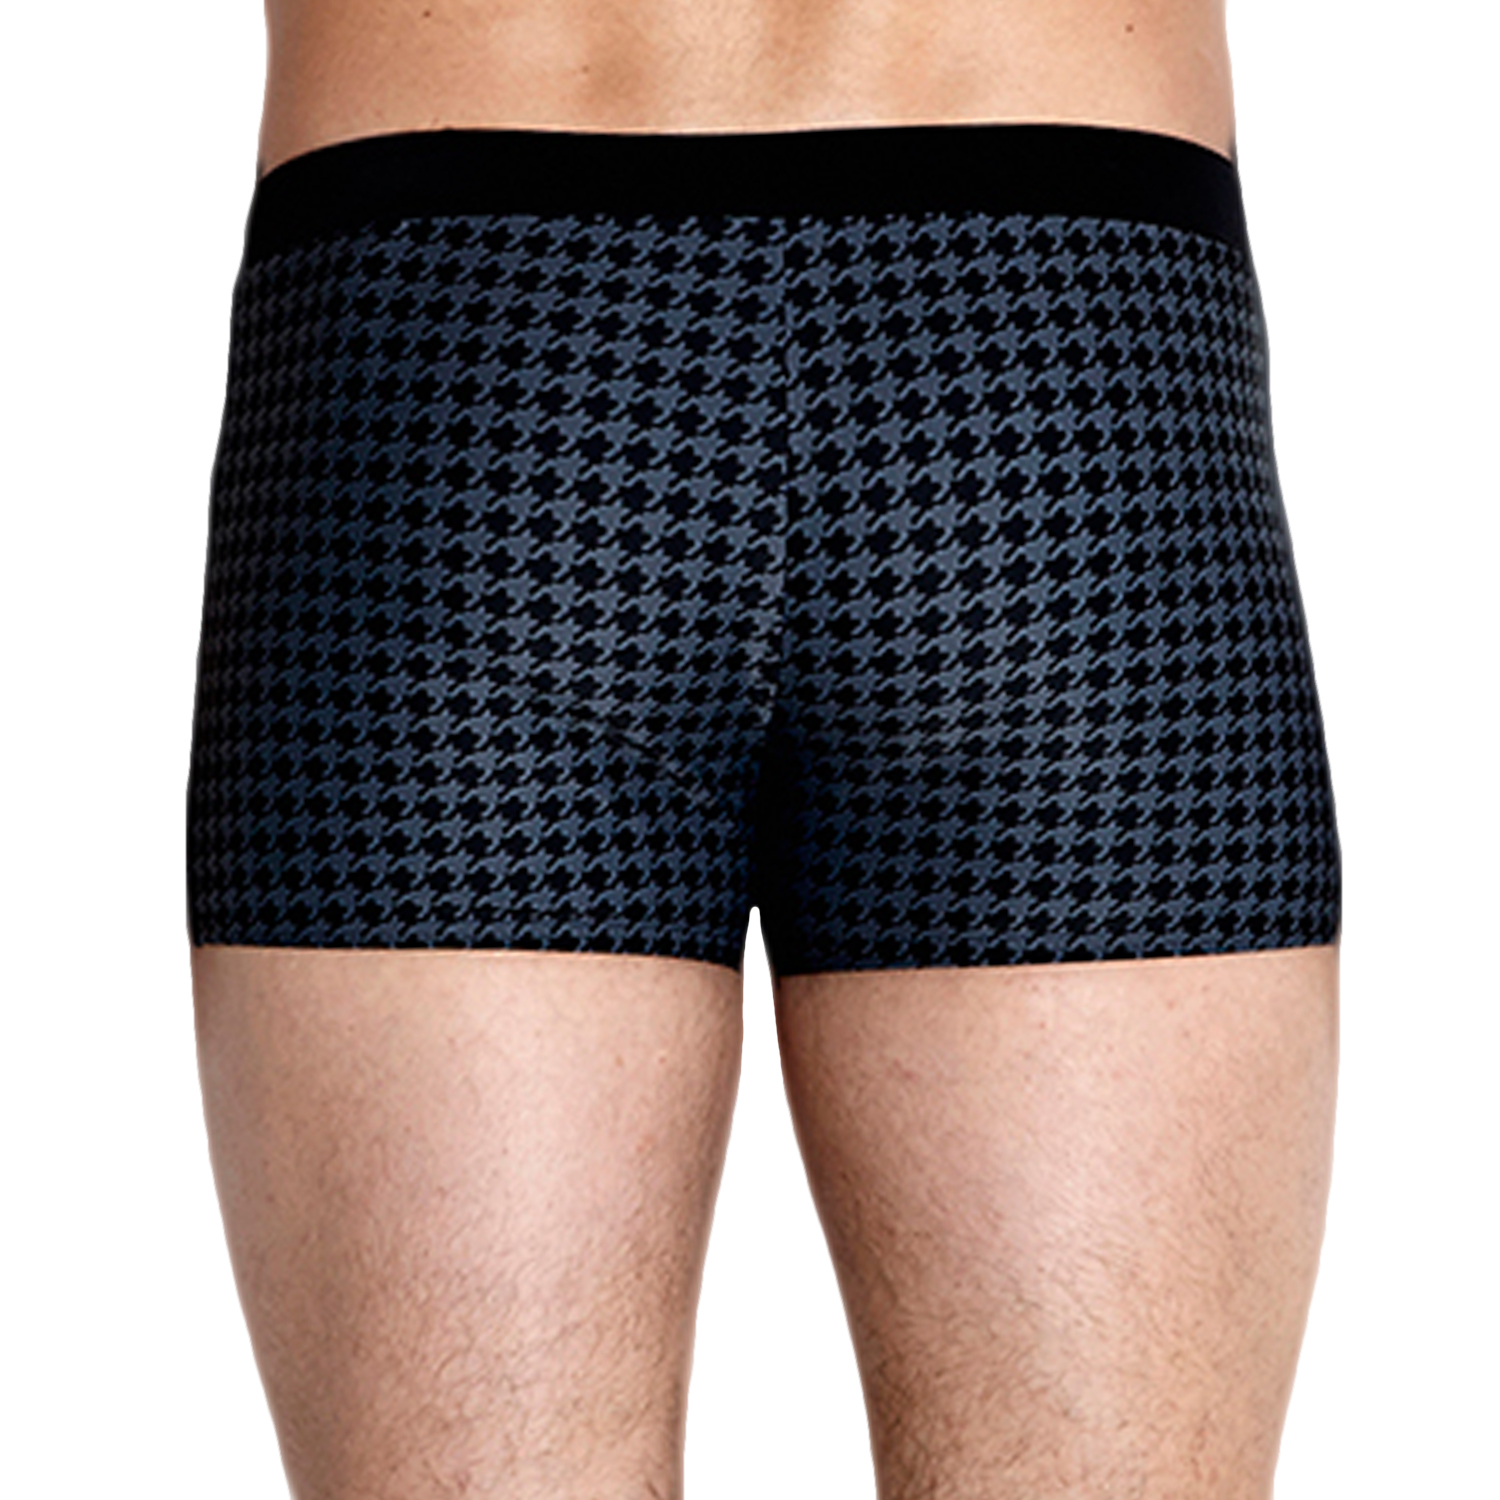 For many years, swimwear designers focused largely on women's swimwear, leaving men with their plain black or navy swimming trunks. These days though, companies like Speedo recognise that men too, like to look good as well as wearing quality swimwear when at the pool or beach/5().